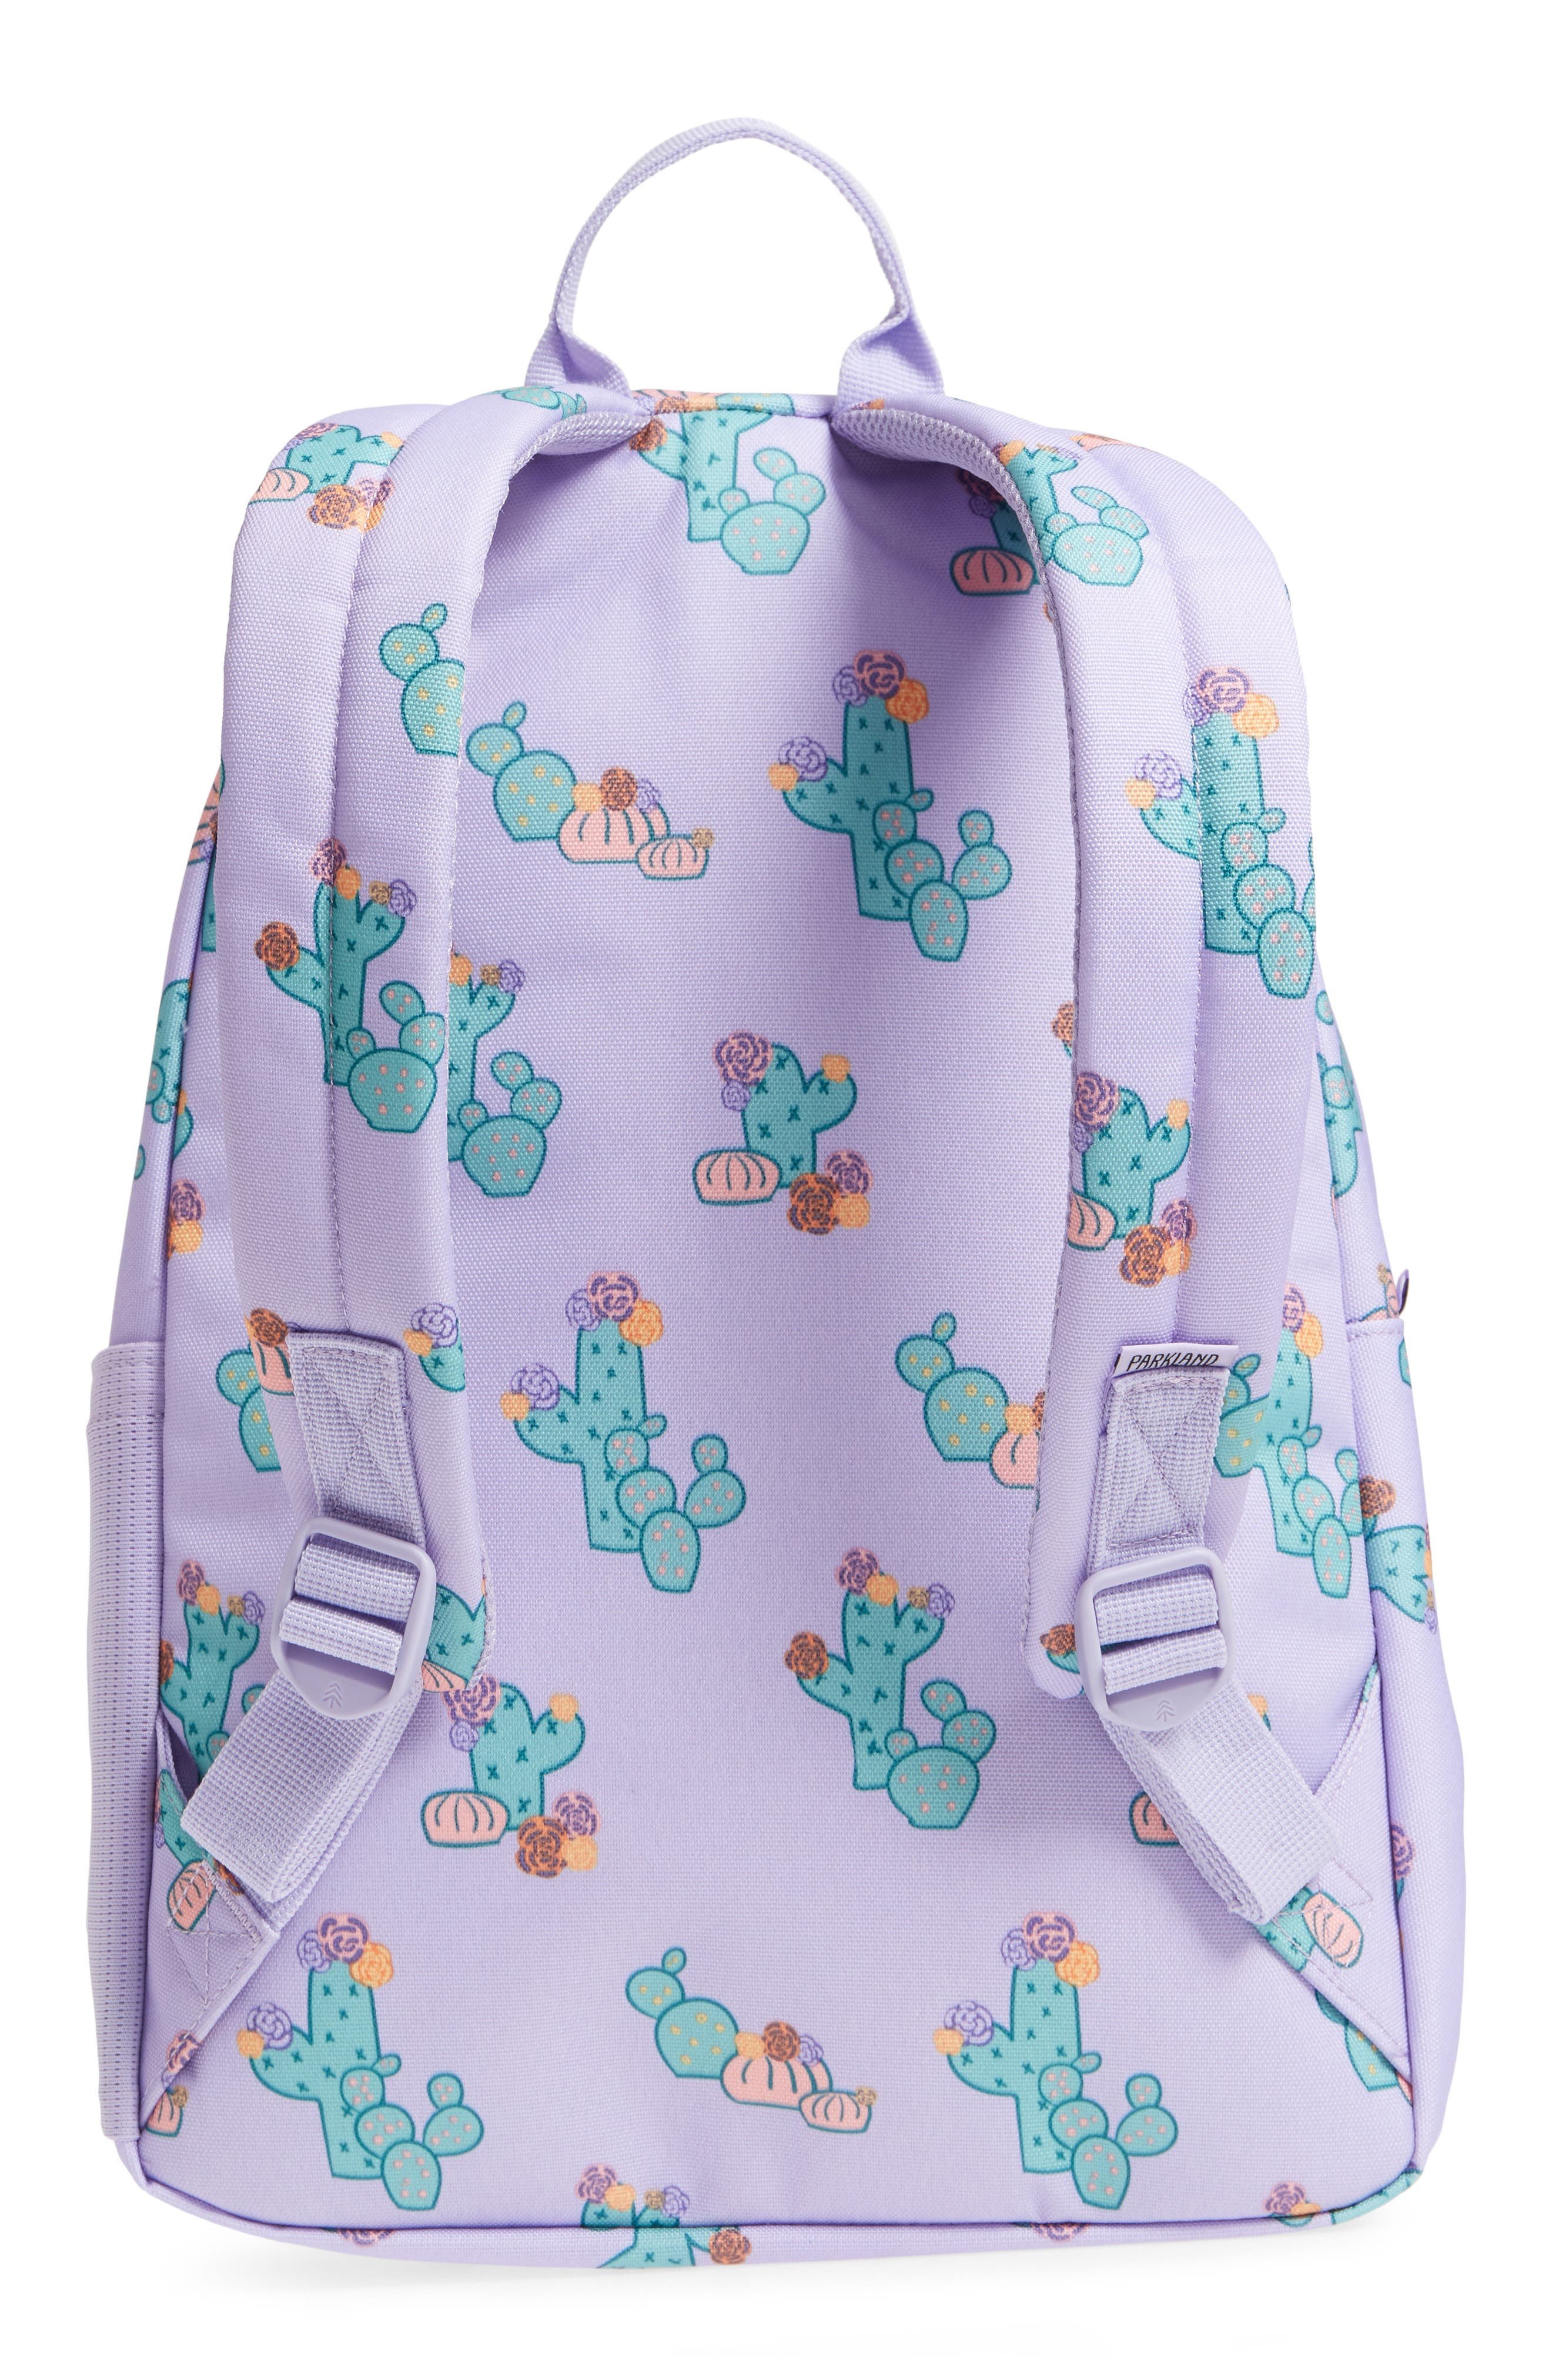 Bayside Cactus Flower Backpack,                             Alternate thumbnail 2, color,                             533